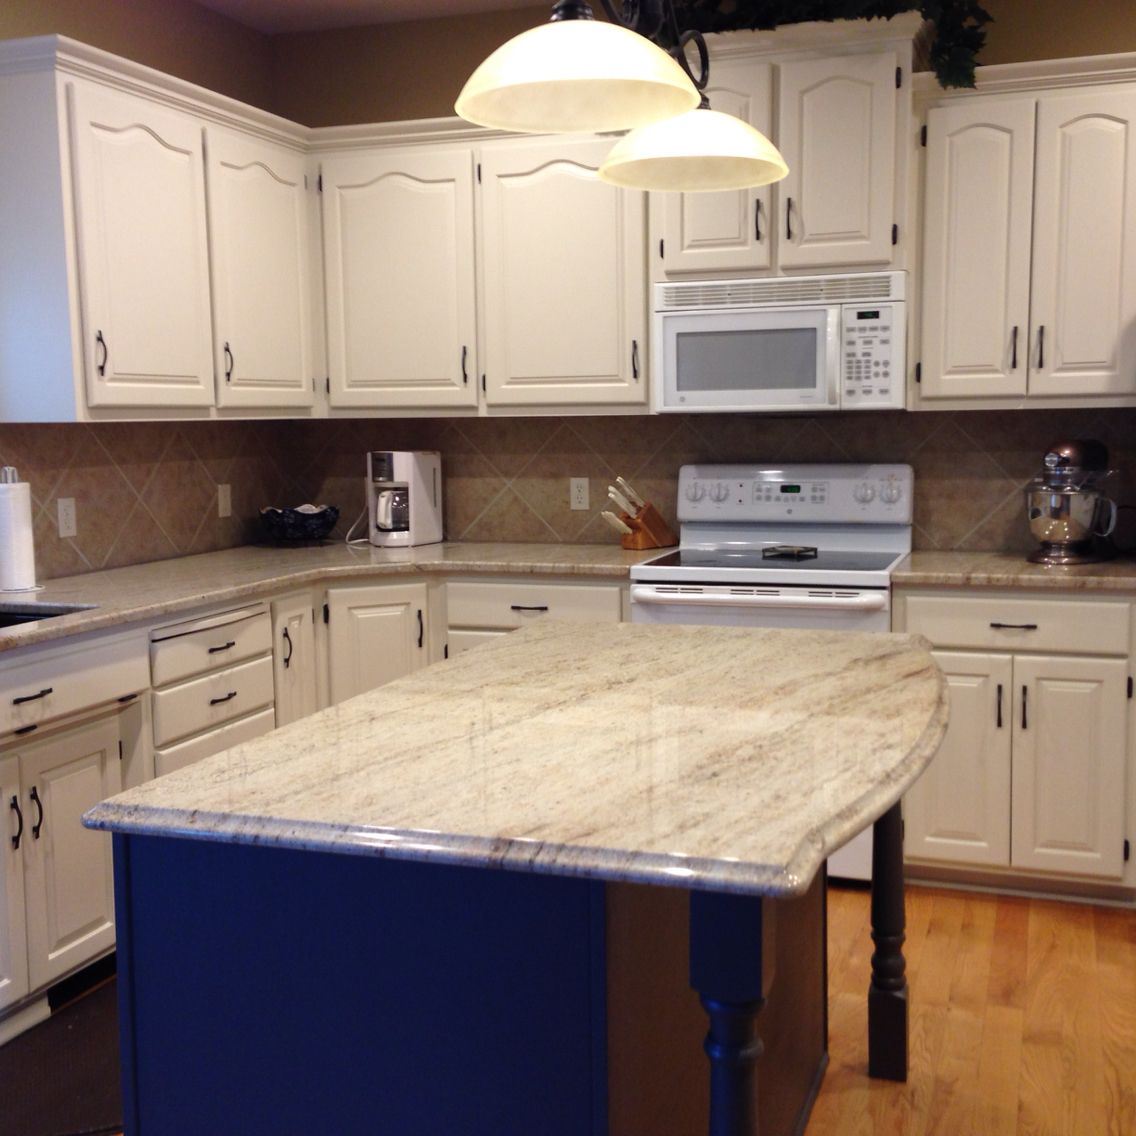 Kitchen Cabinet Granite: Astoria Granite, Pittsburg Paints Antique White Cabinets And Pittsburg Paints Oswego Tea On The